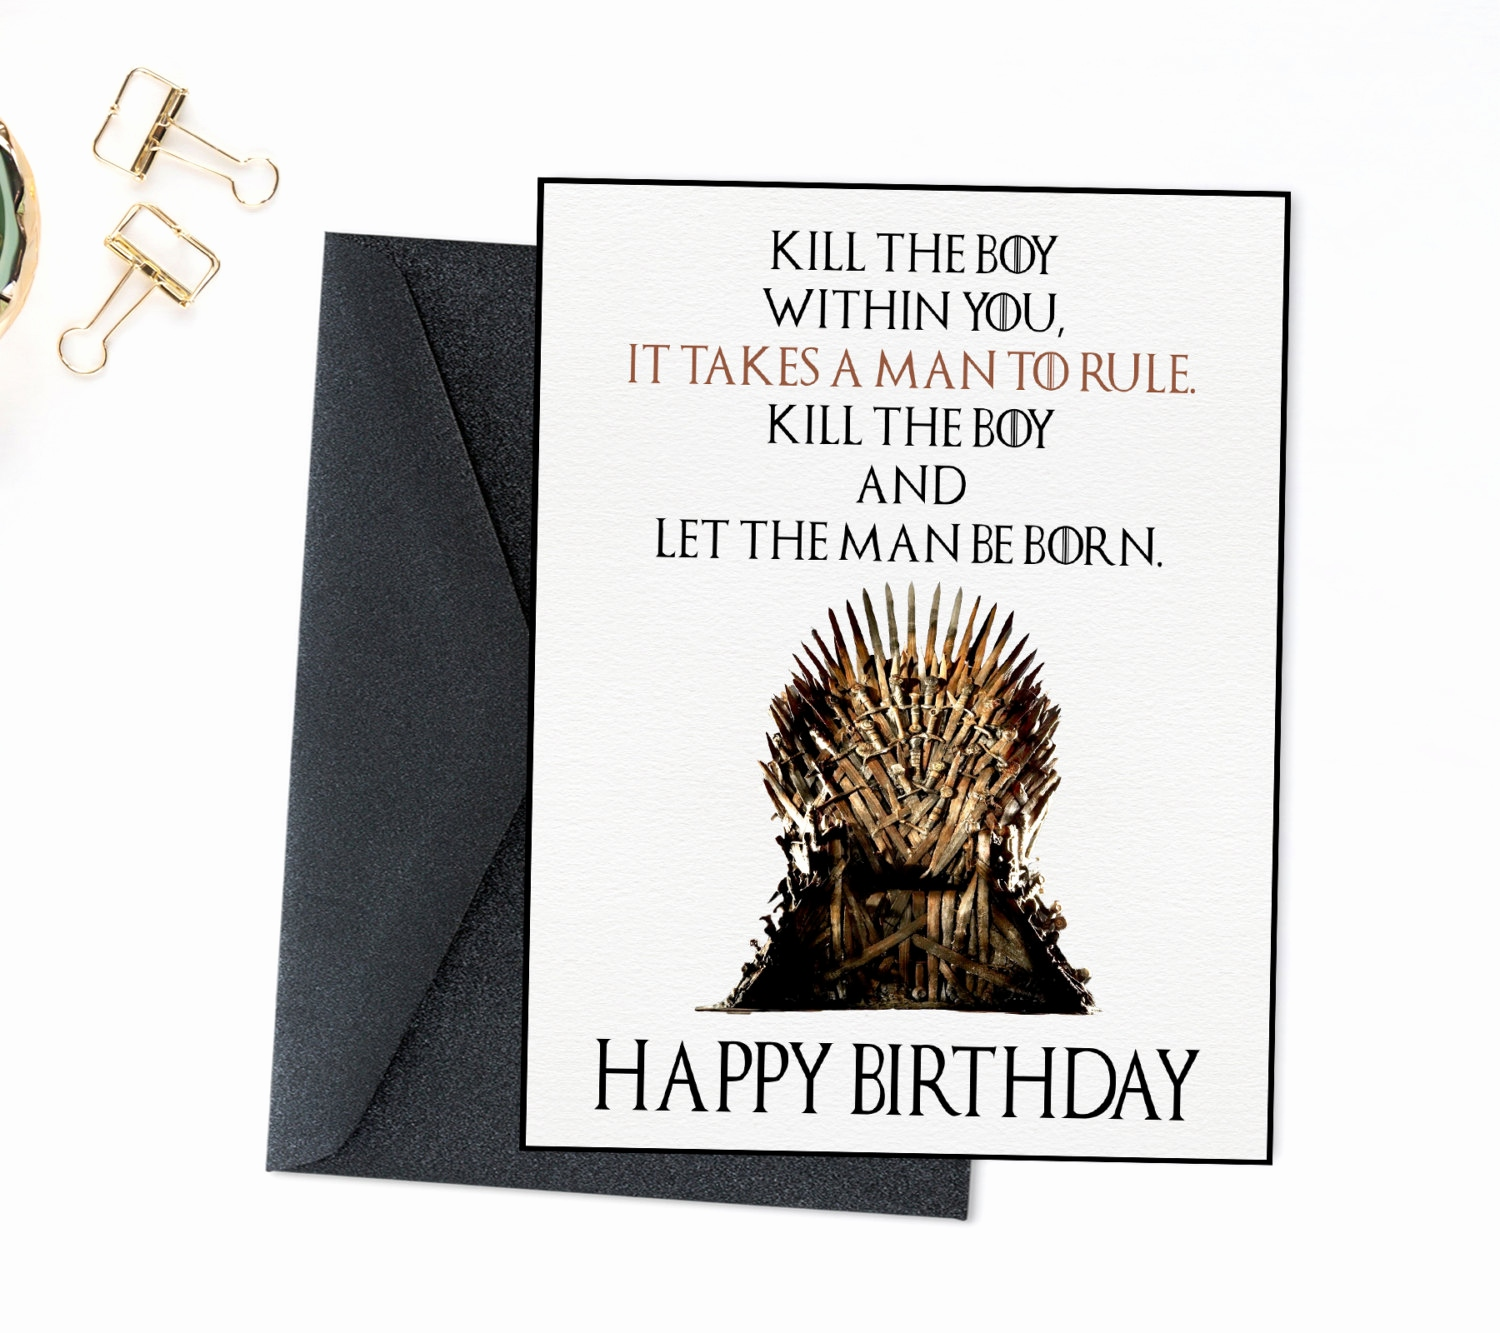 happy birthday game of thrones card ; game-of-thrones-happy-birthday-card-fresh-game-of-thrones-birthday-card-printable-birthday-throne-of-game-of-thrones-happy-birthday-card